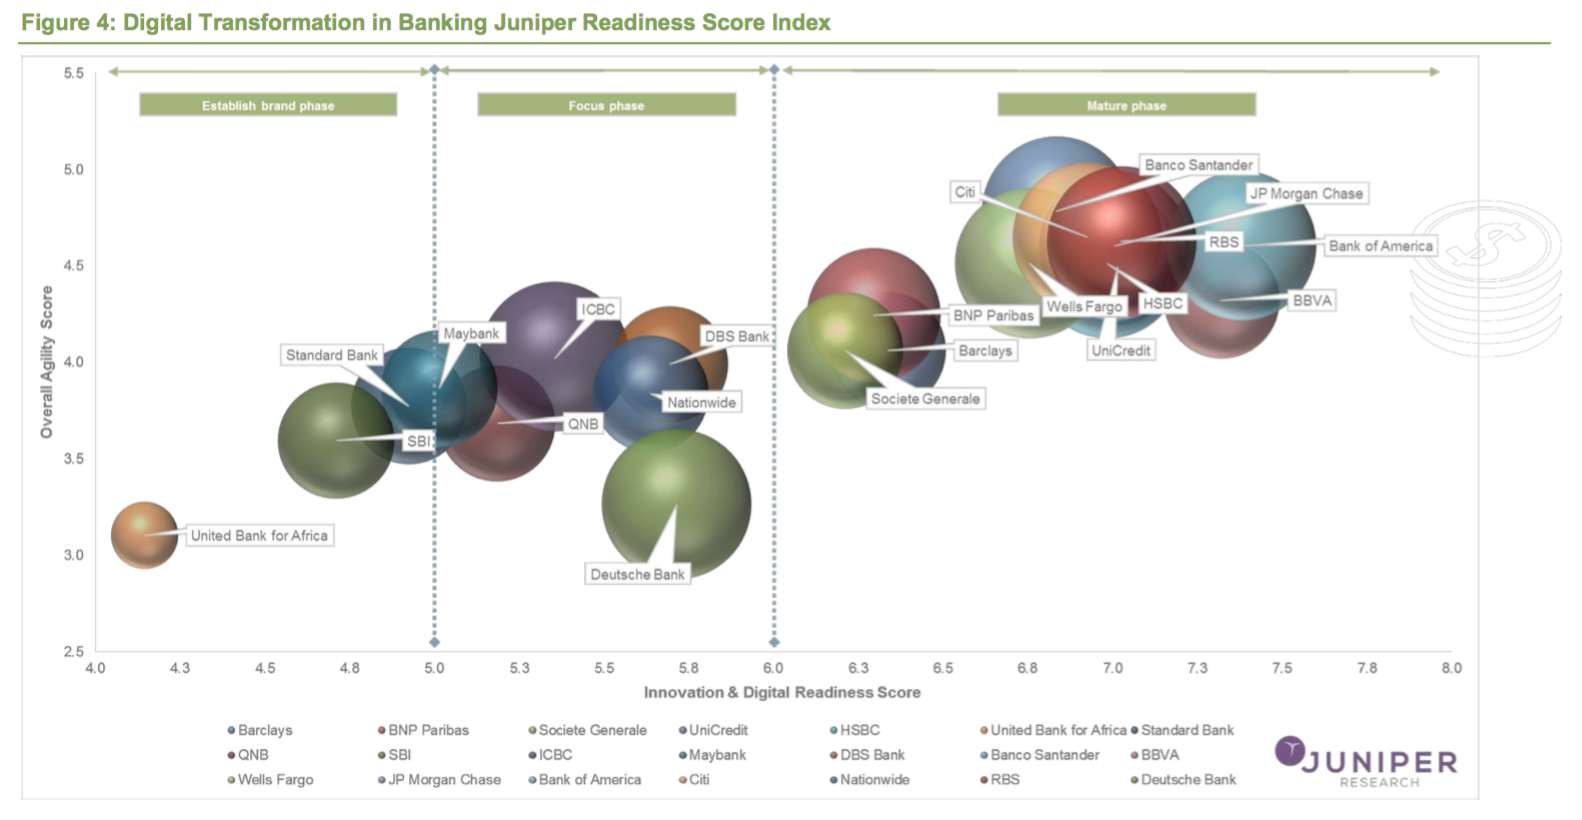 juniper-research-digitalproofing-banks-2017-1